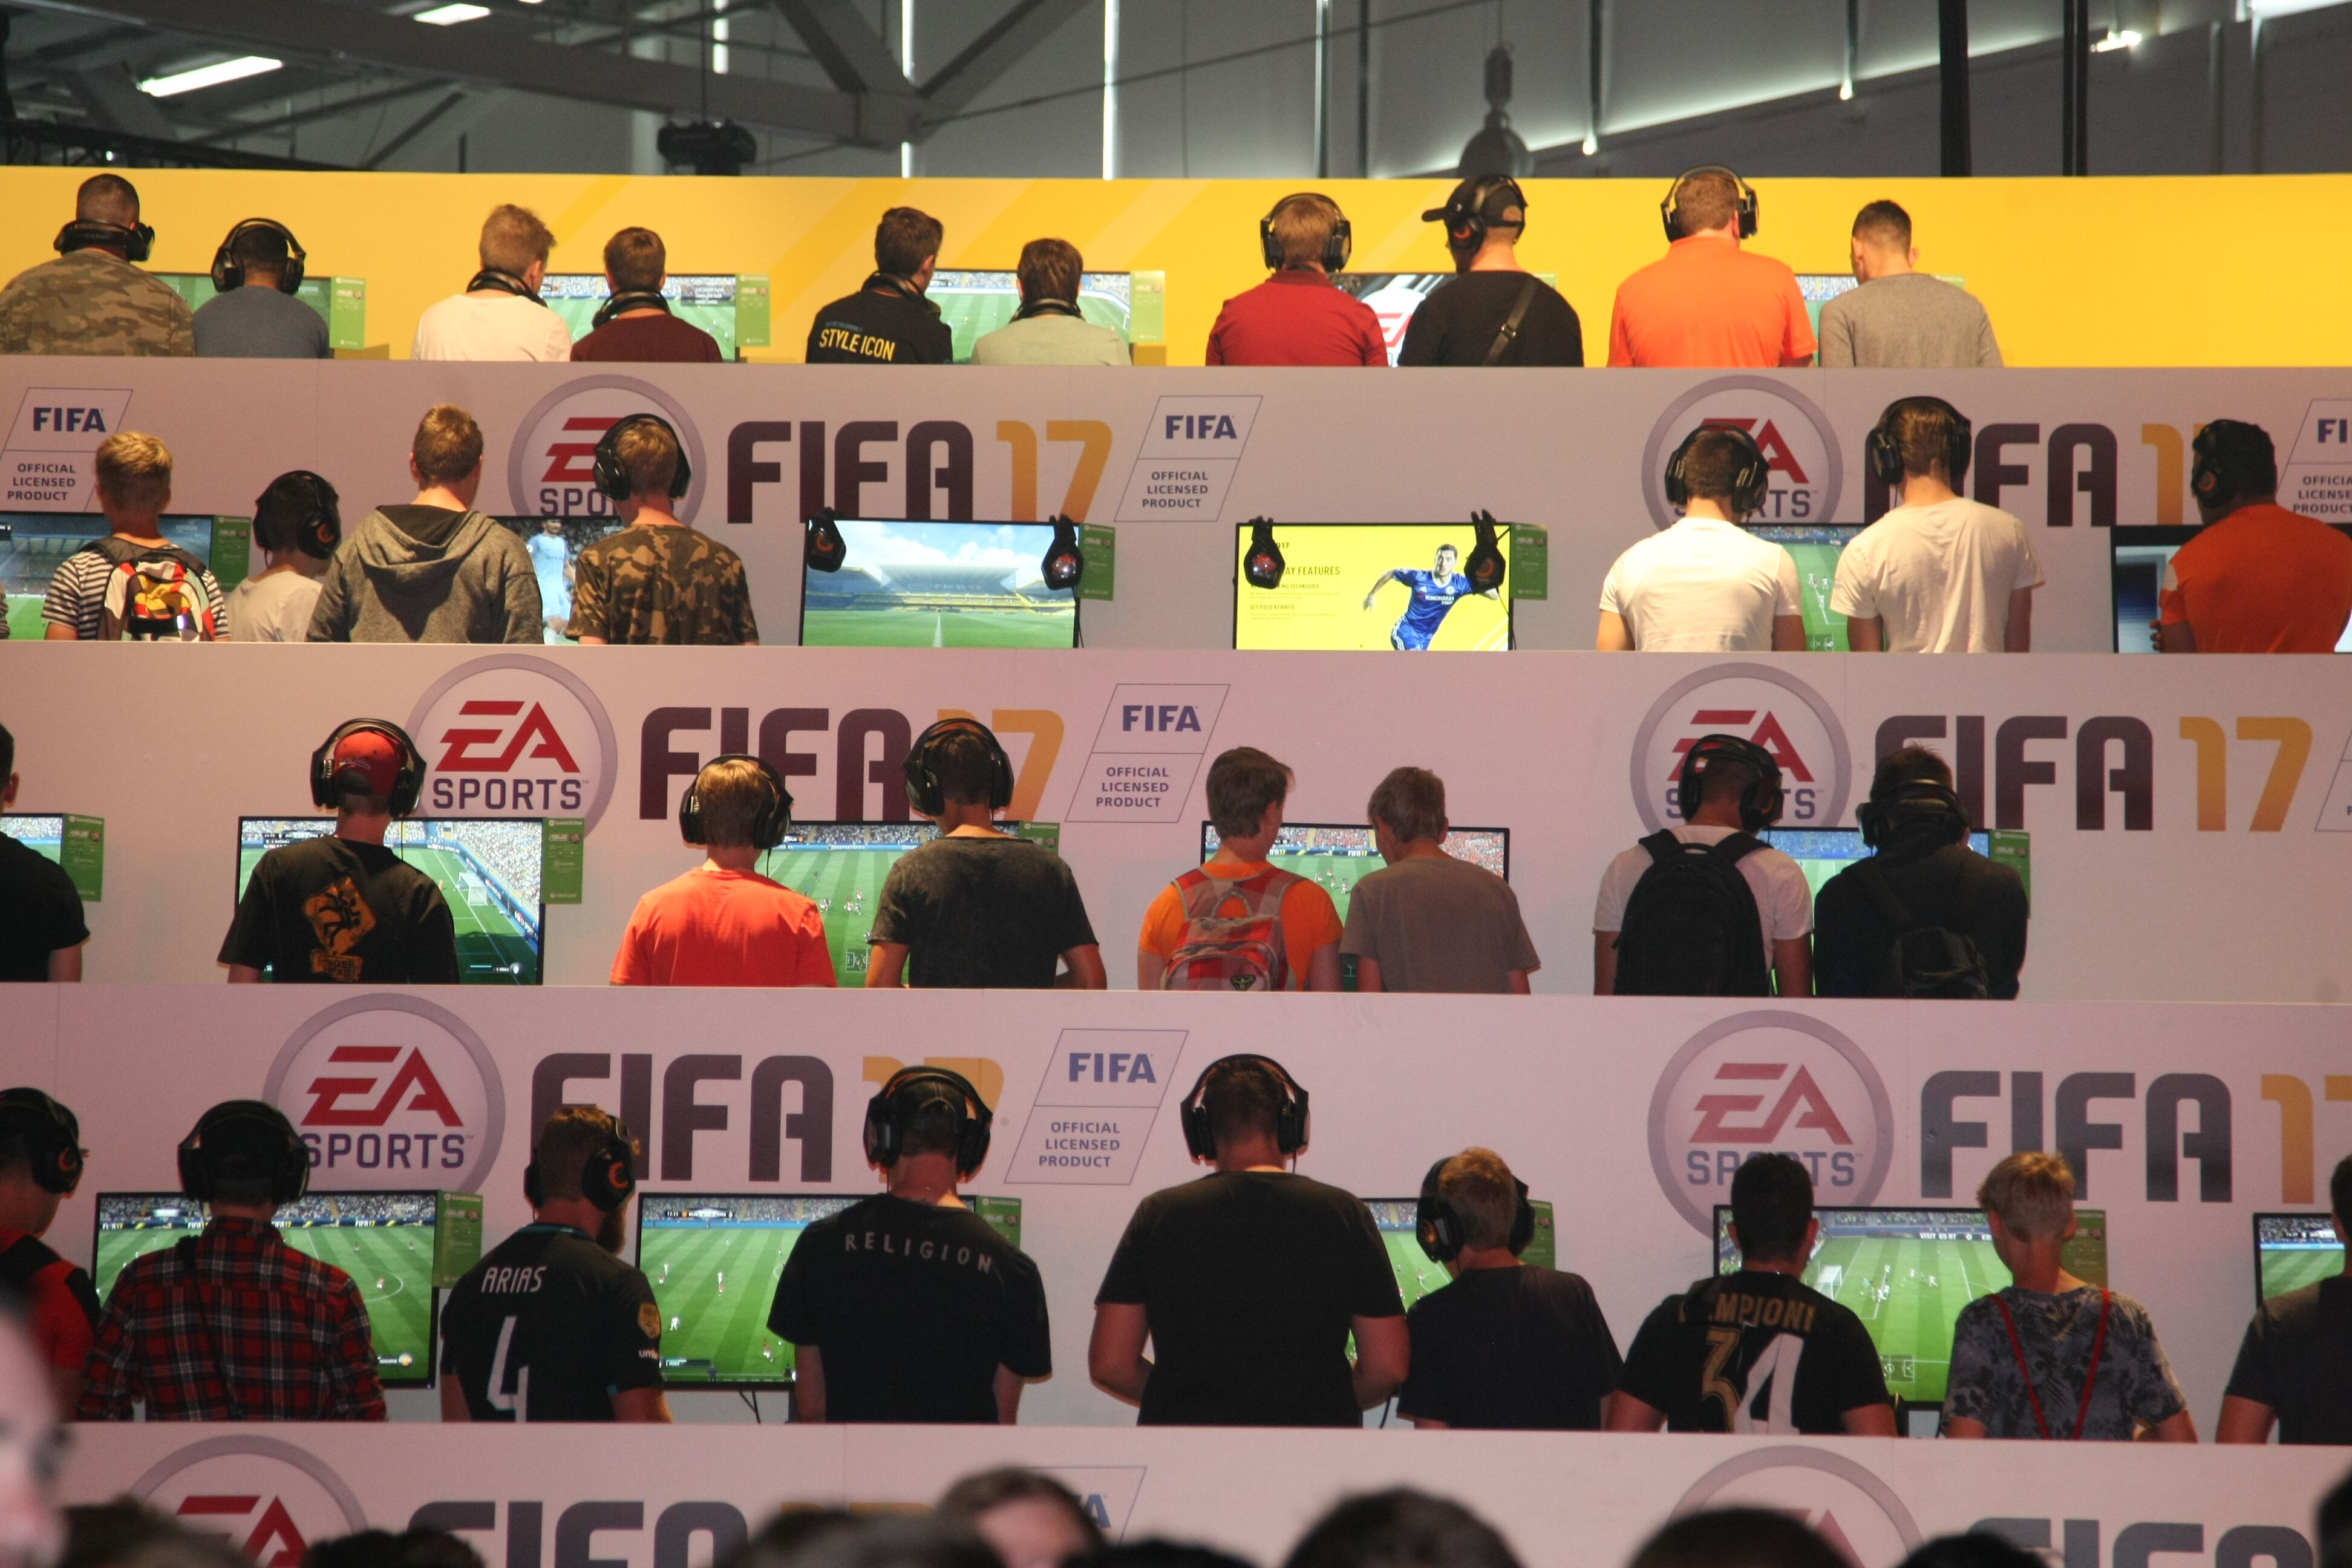 591969388-visitors-playing-fifa-17-at-the-ea-sports-stand-at-the